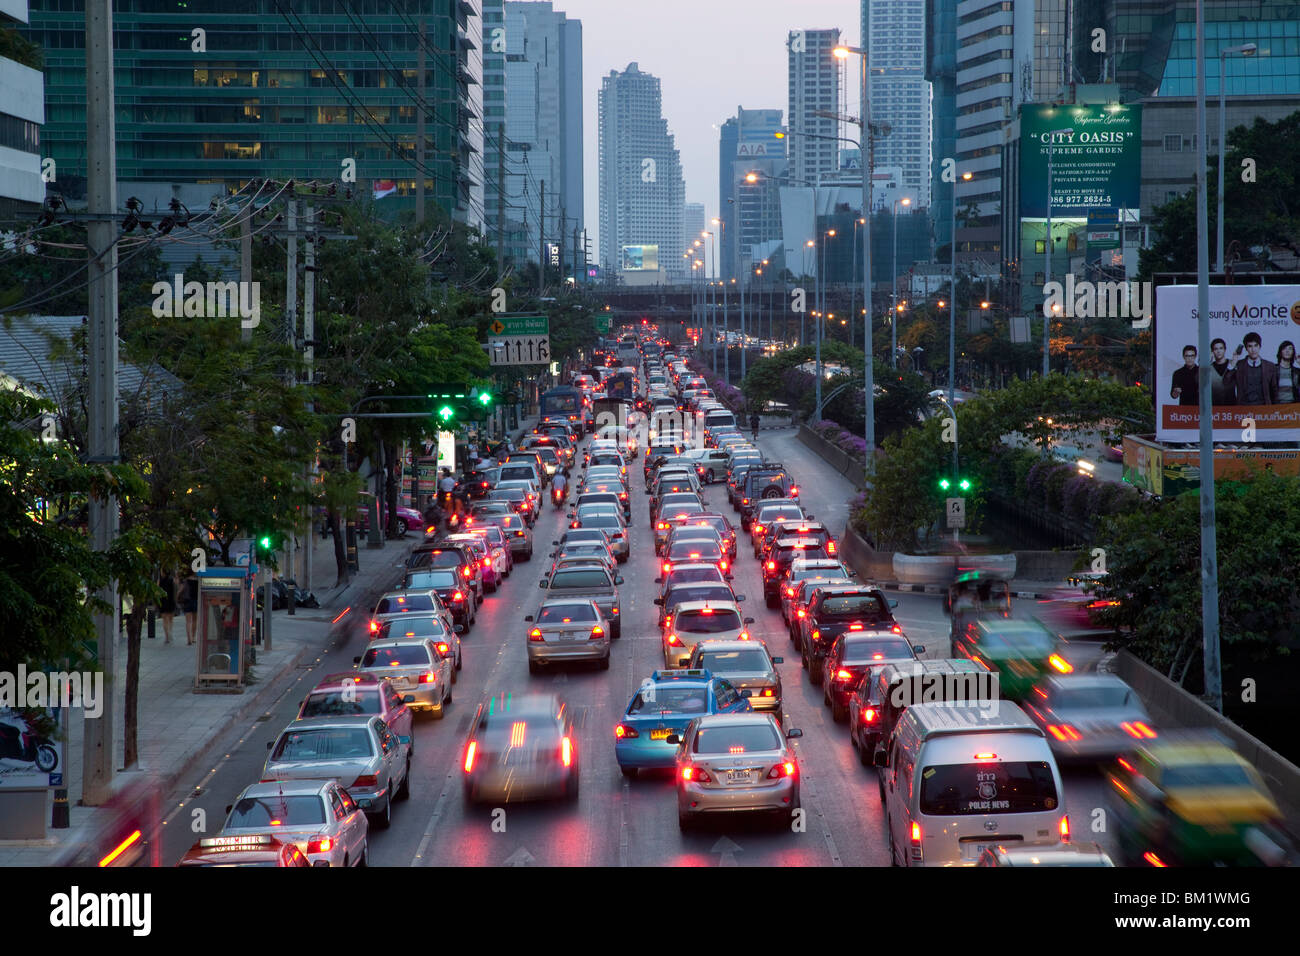 Evening rush-hour traffic on the Sathon Road in Bangkok. - Stock Image